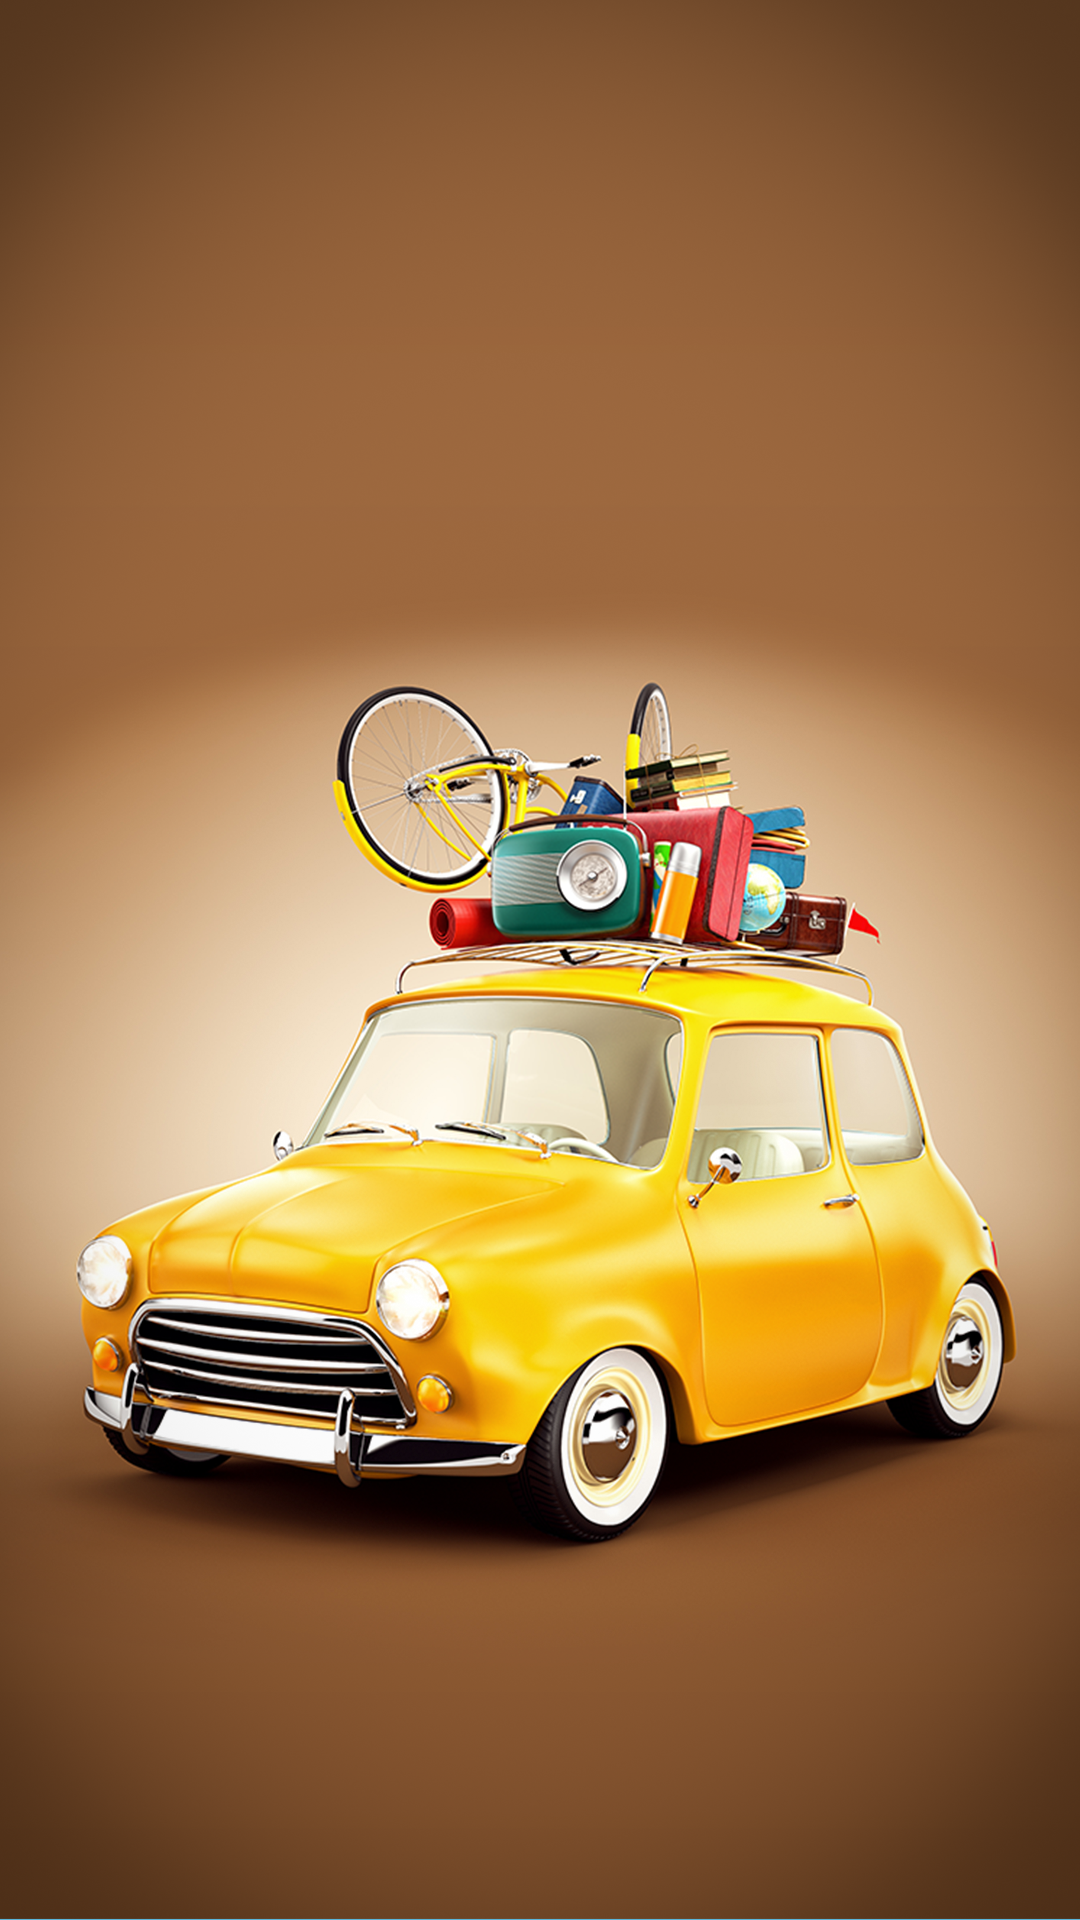 Charming Automobile Wall Art Pictures Inspiration - The Wall Art ...